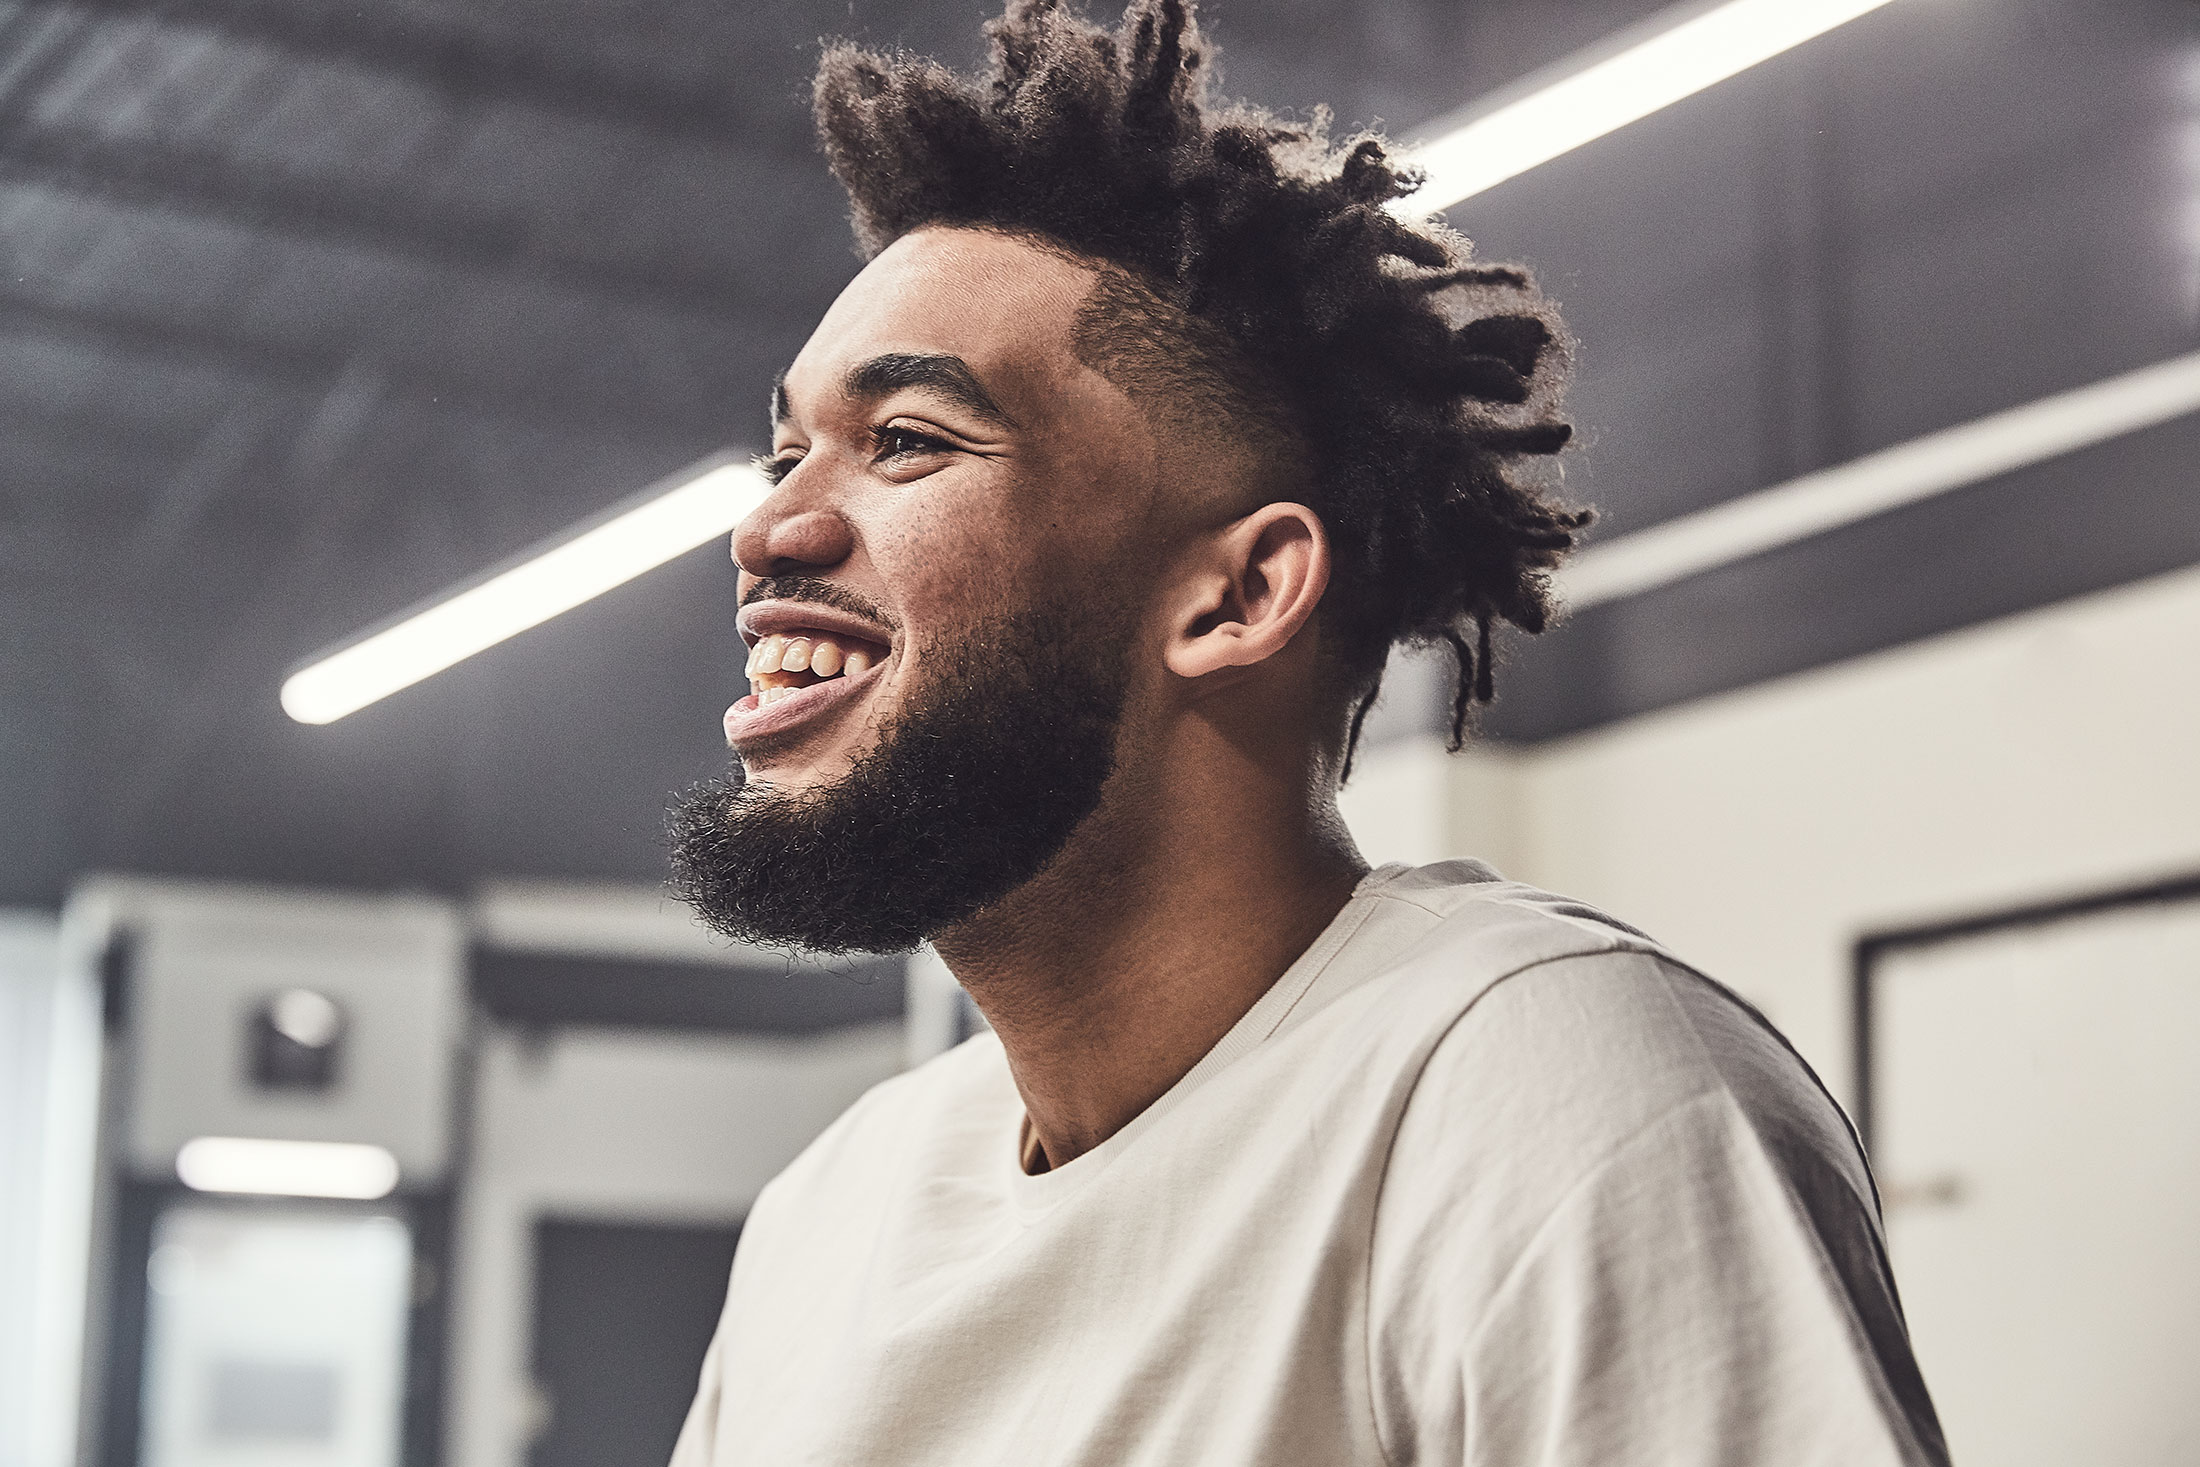 KARL ANTHONY TOWNS - NBA